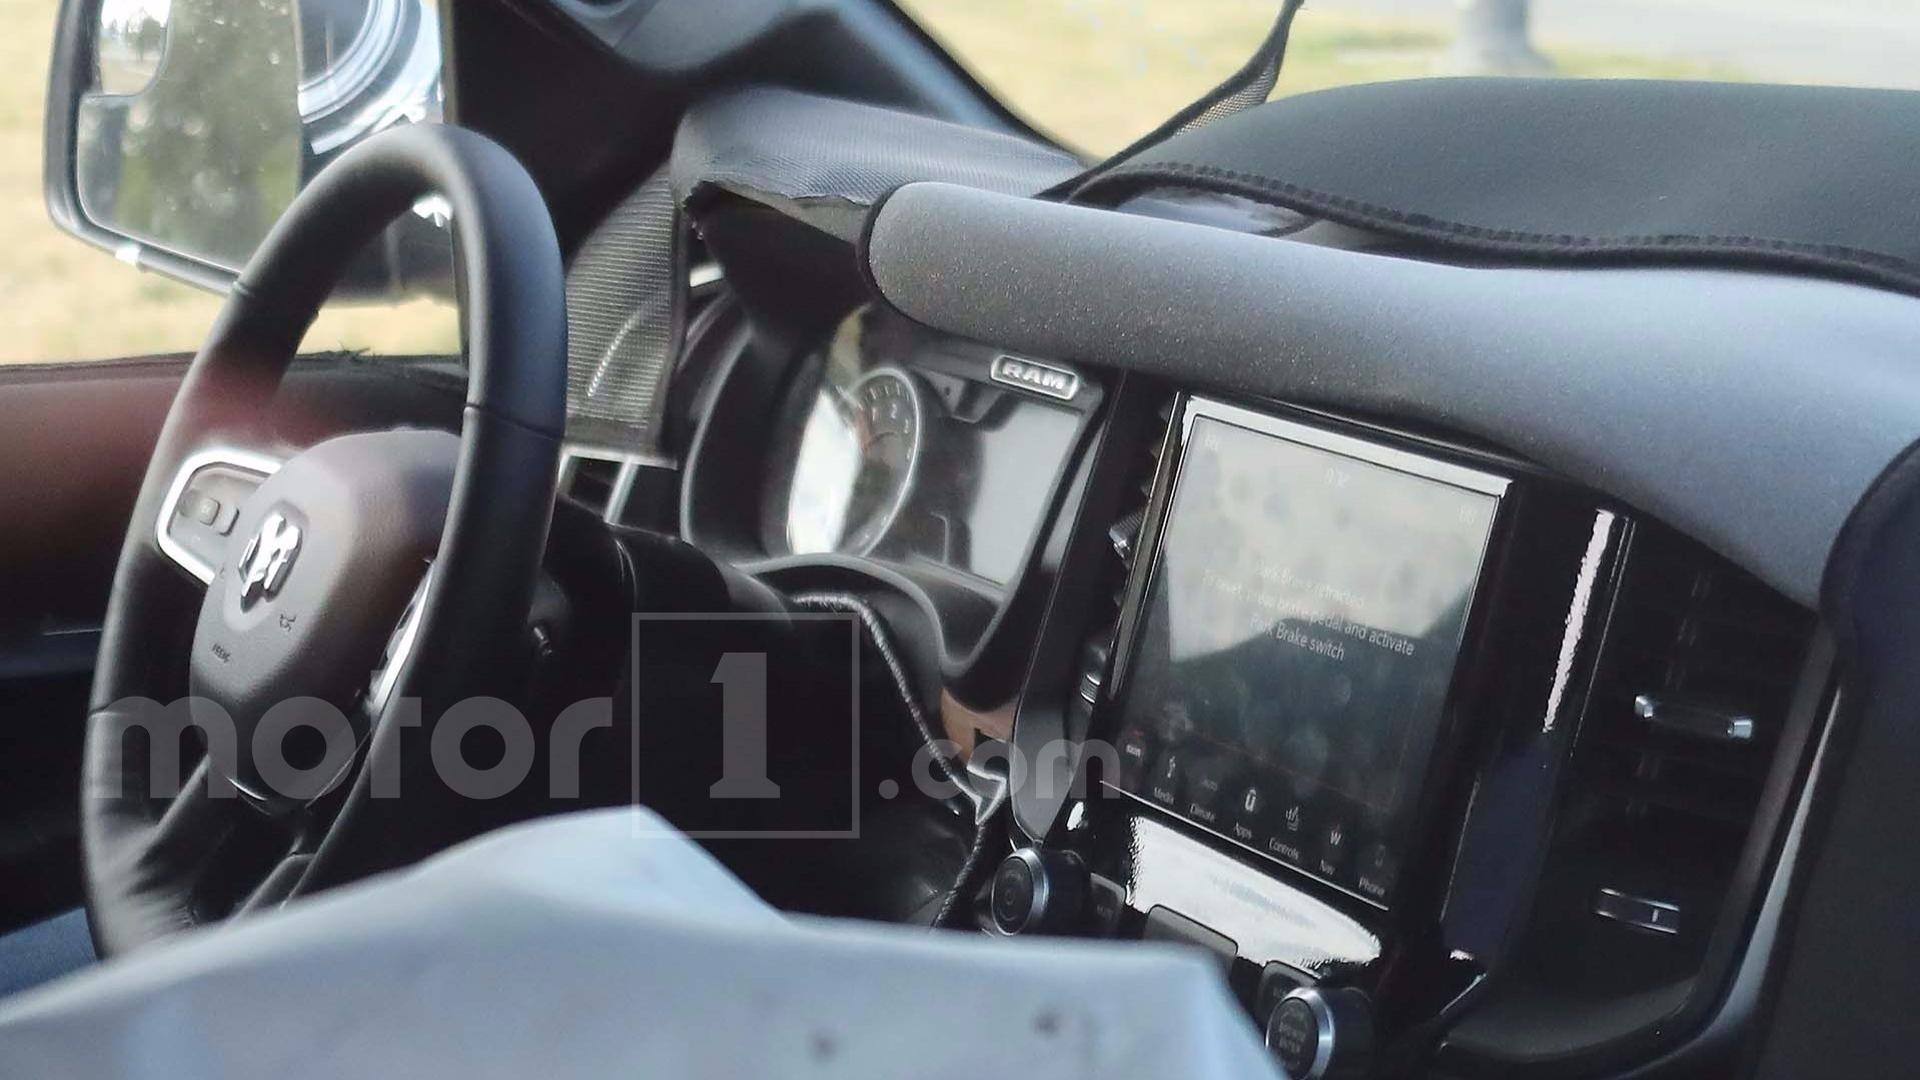 2019 Ram 1500 Spied With Interior And Lights Exposed Dodge Steering